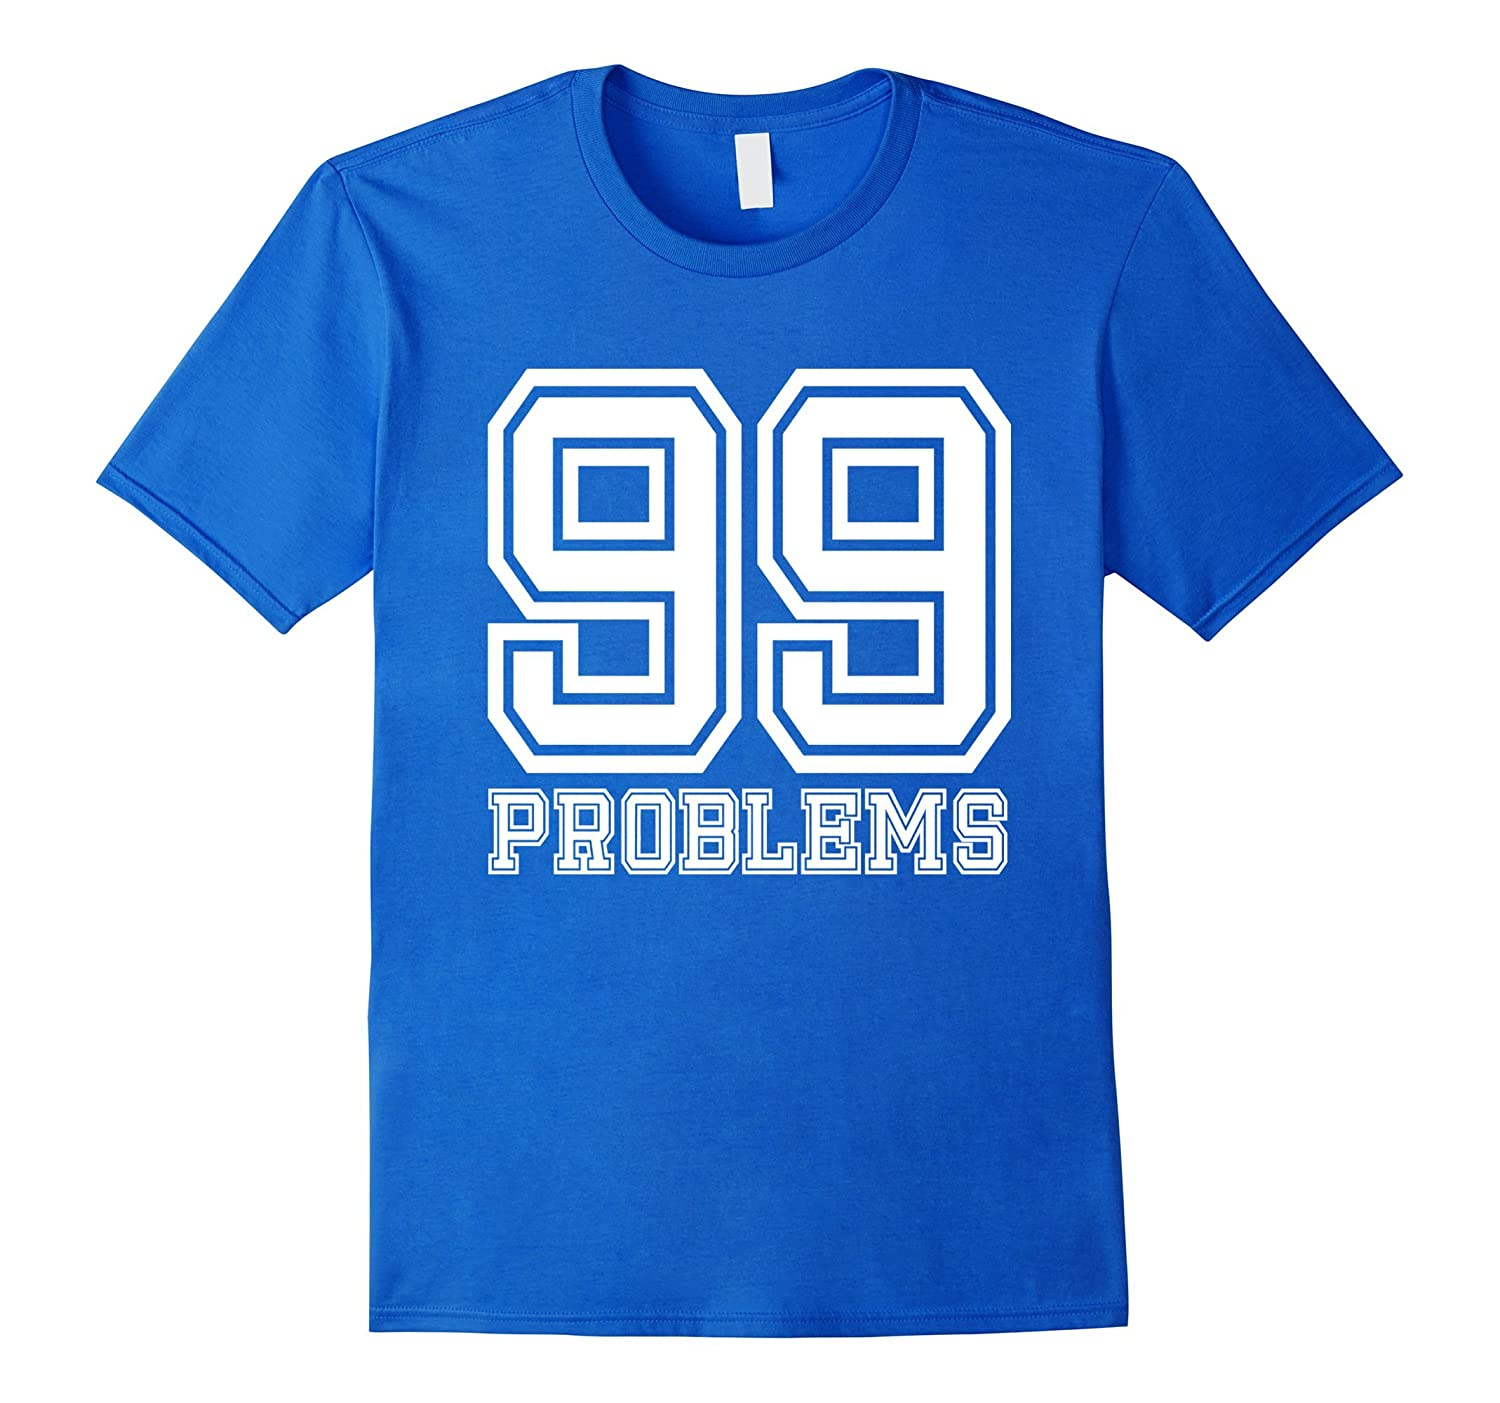 99 Problems Ain't 1 Couples T-Shirt | Front & Back Design-FL